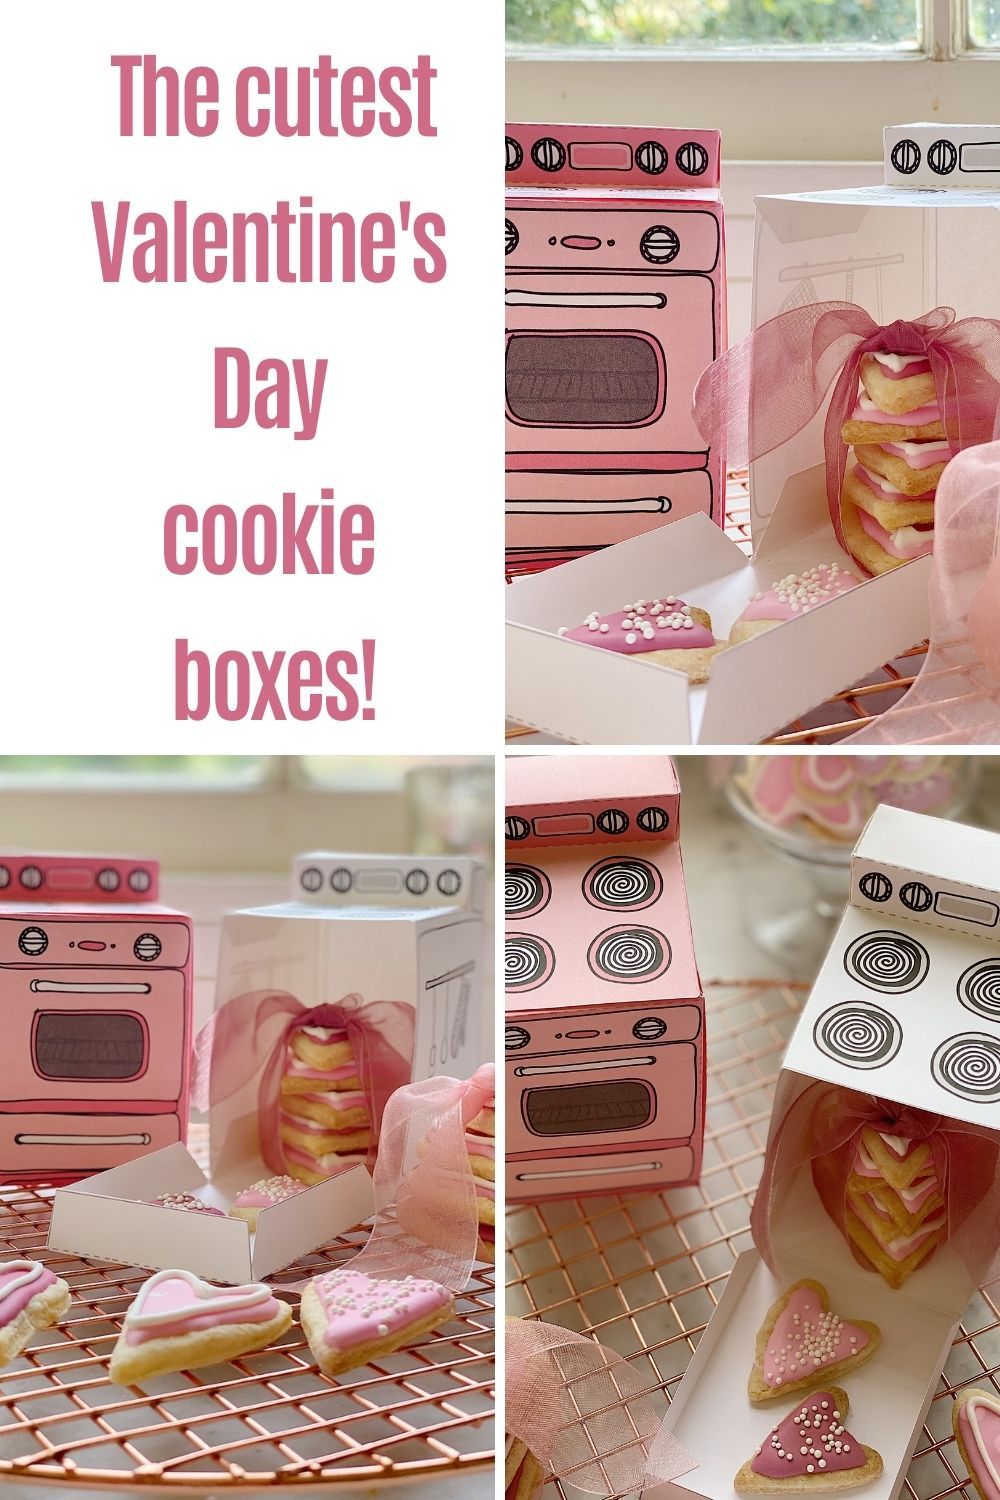 I think cookies always taste best when they are fresh from the oven. I found some Valentine's Day Cookie Boxes that guarantee your cookies are always fresh from the oven.